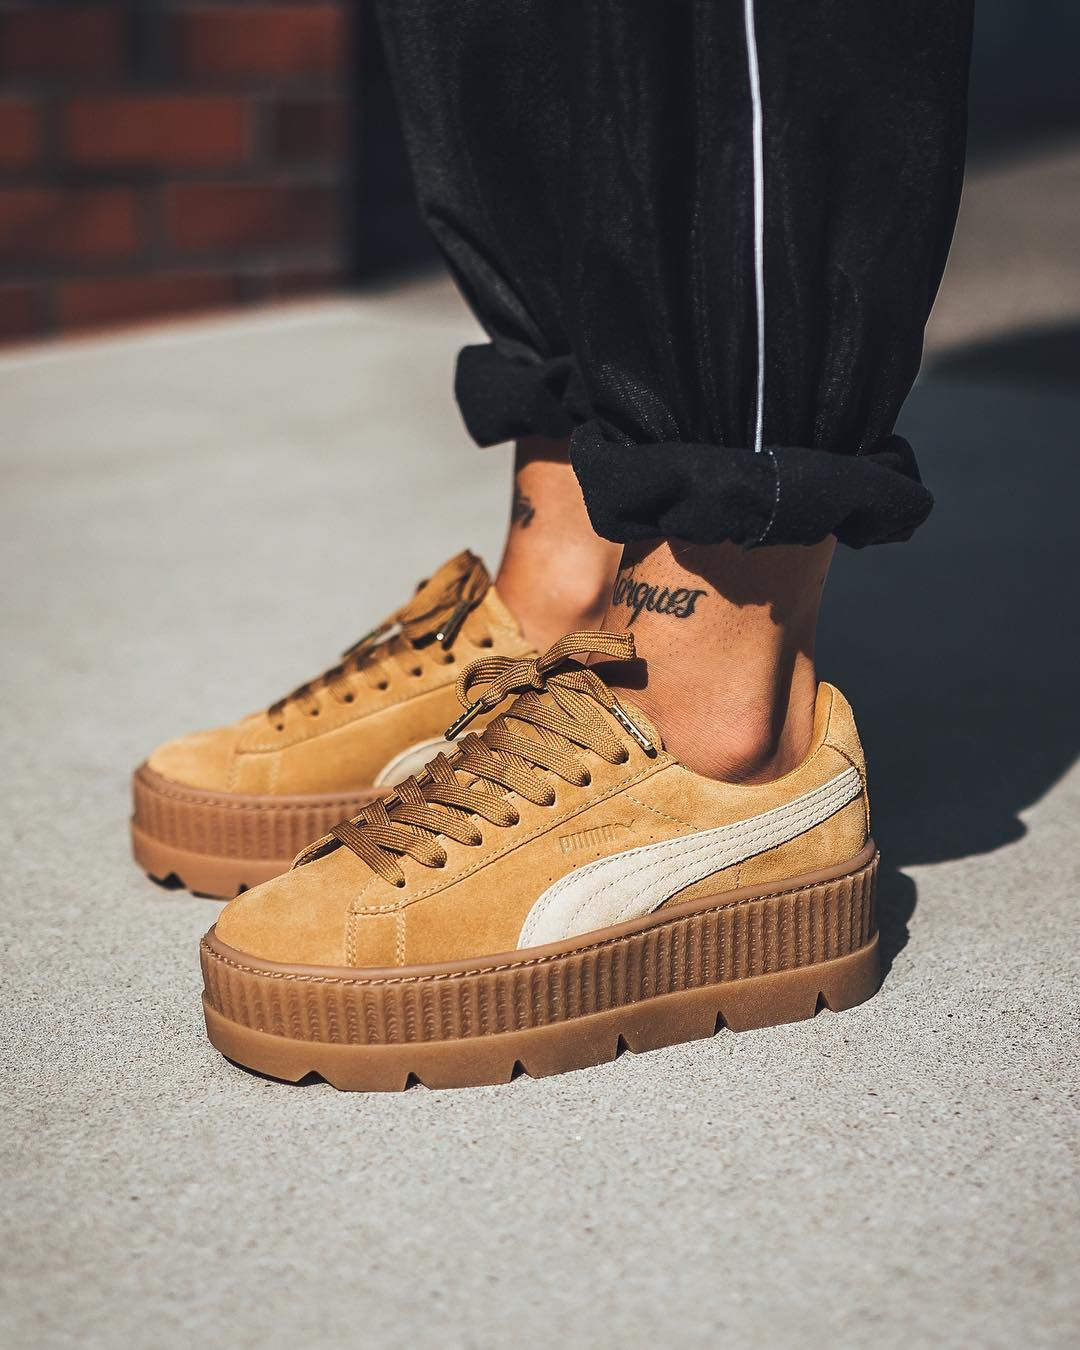 53c639c7ed6 Fenty By Rihanna x Puma Cleated Creeper Suede